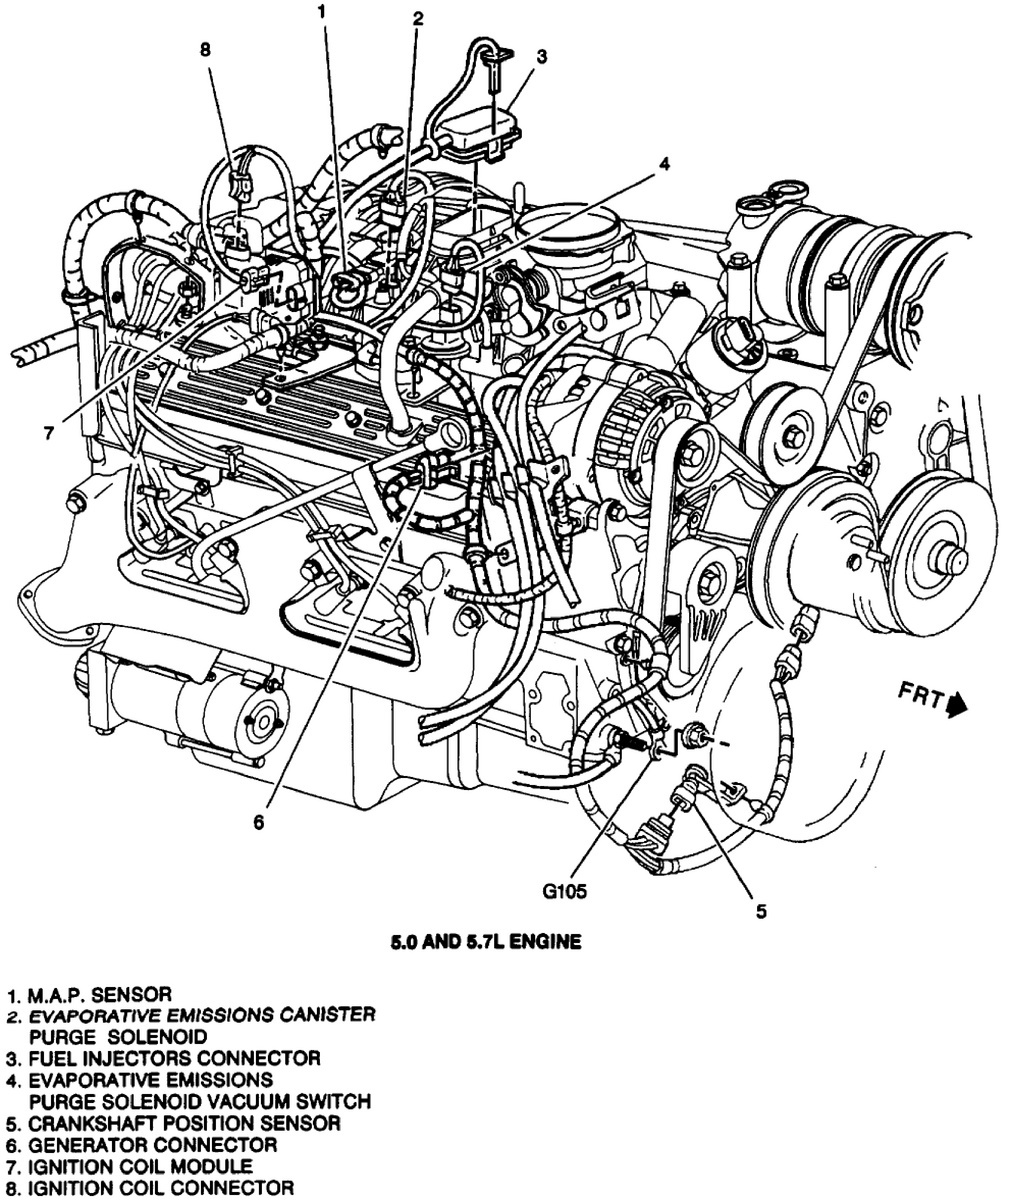 1988 Gmc 5 7 Engine Diagram Guide And Troubleshooting Of Wiring Chevy 350 Fuel Pump Block Todays Rh 14 8 9 1813weddingbarn Com